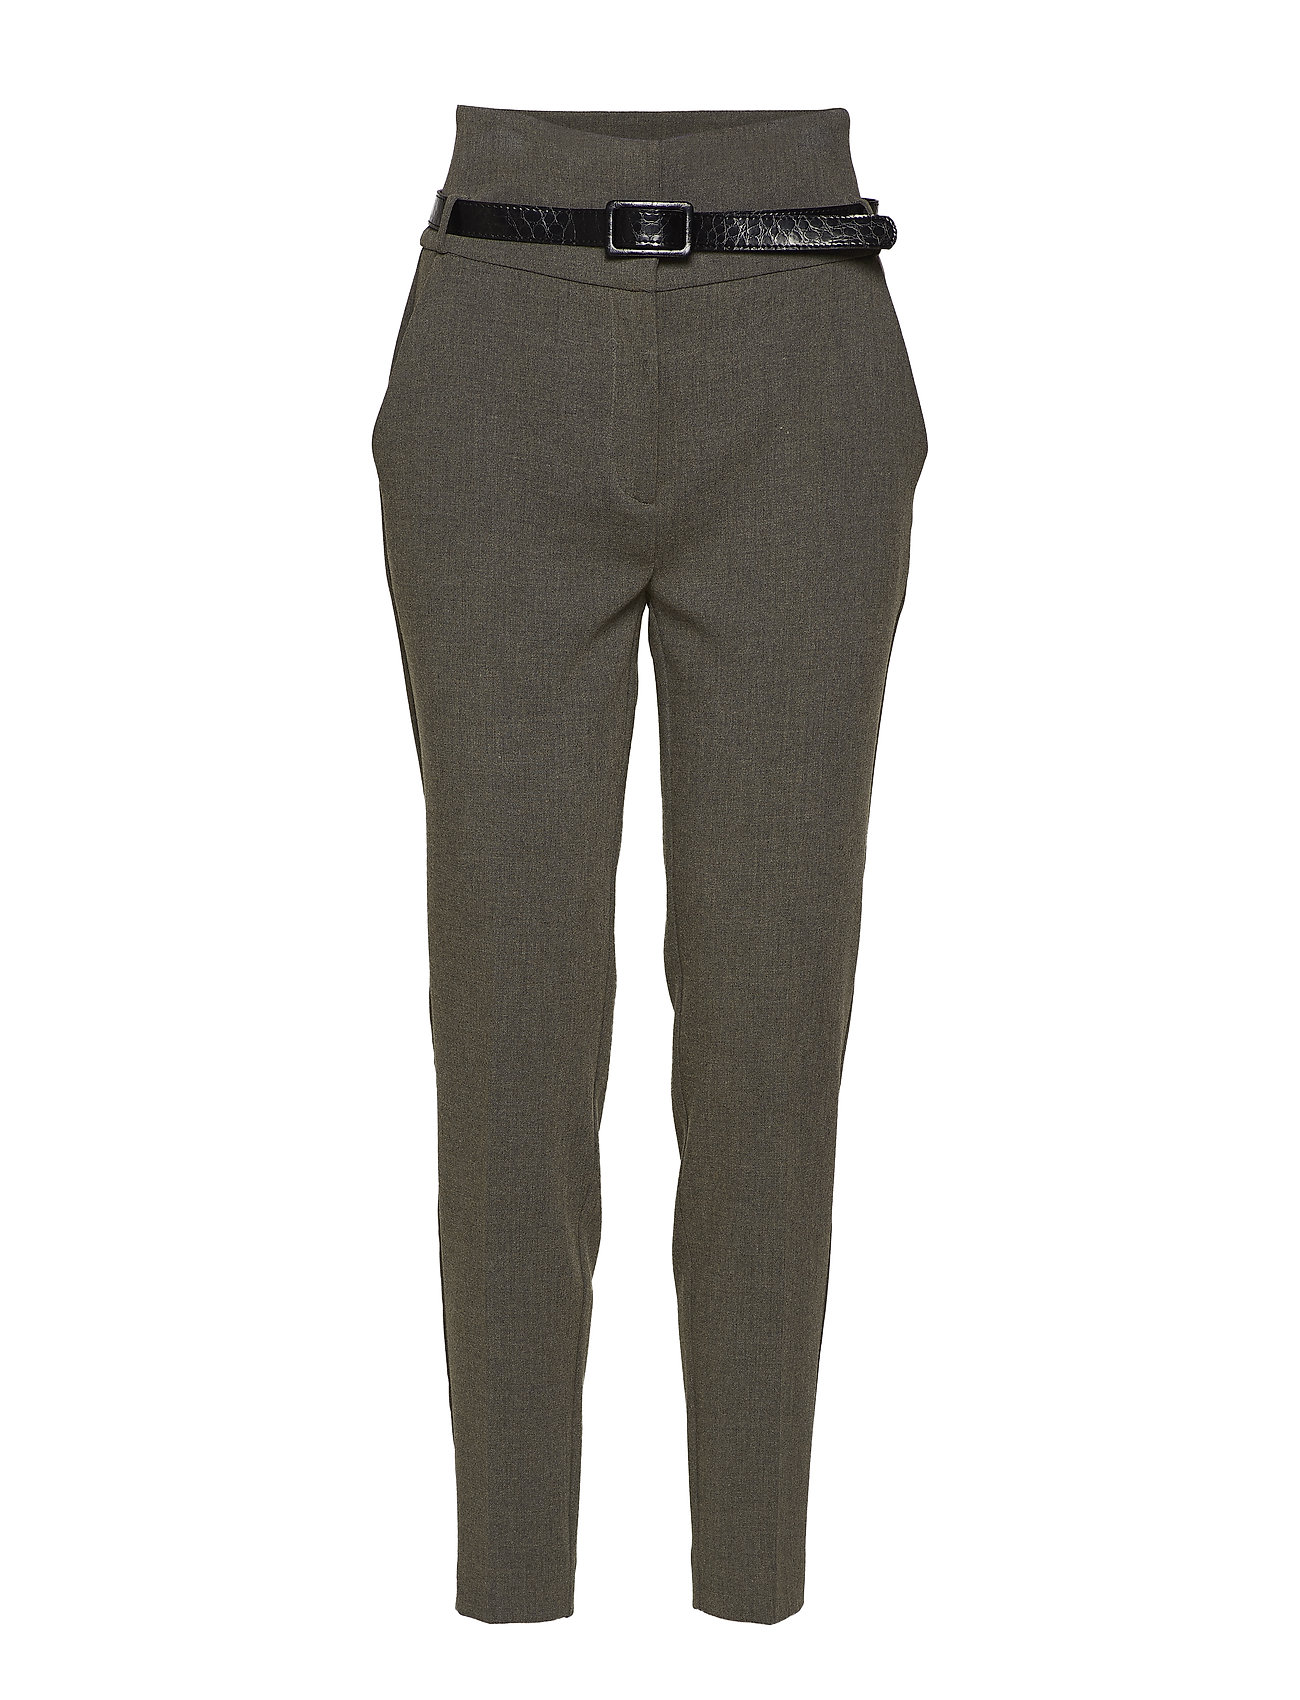 Marciano by GUESS DEZARY PANT - GRANITE HEATHER M